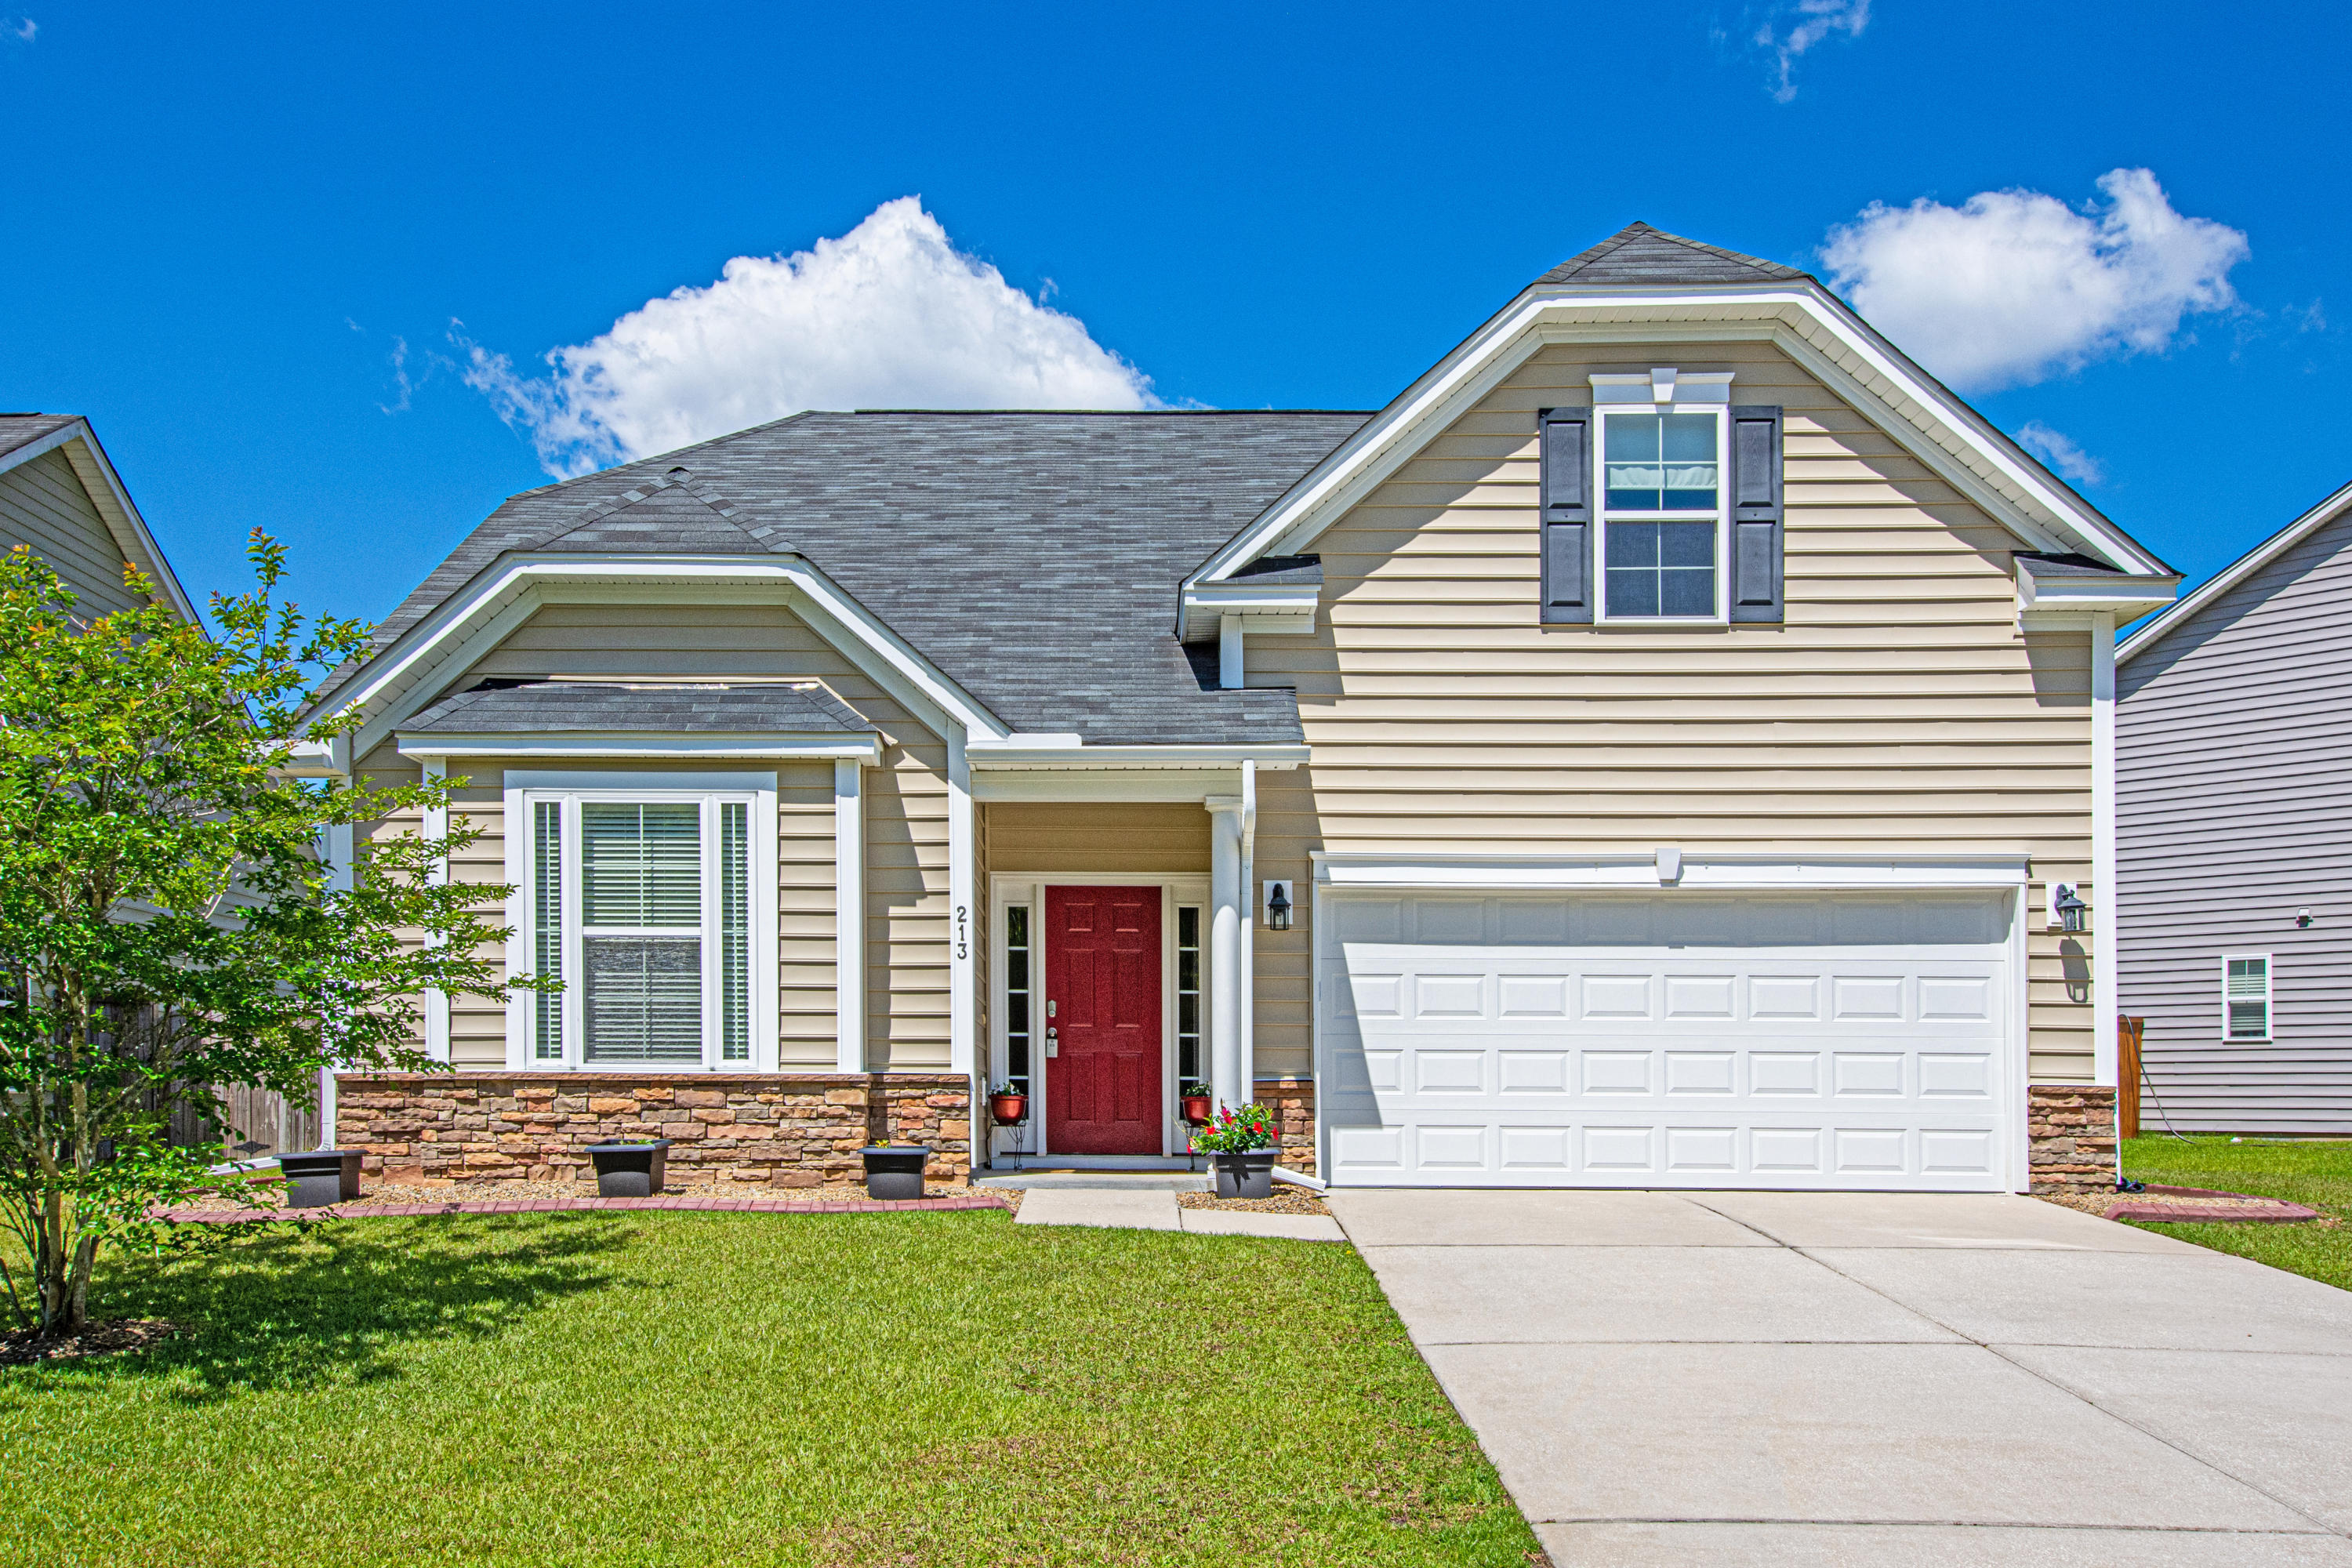 213 Donatella Drive Goose Creek, Sc 29445